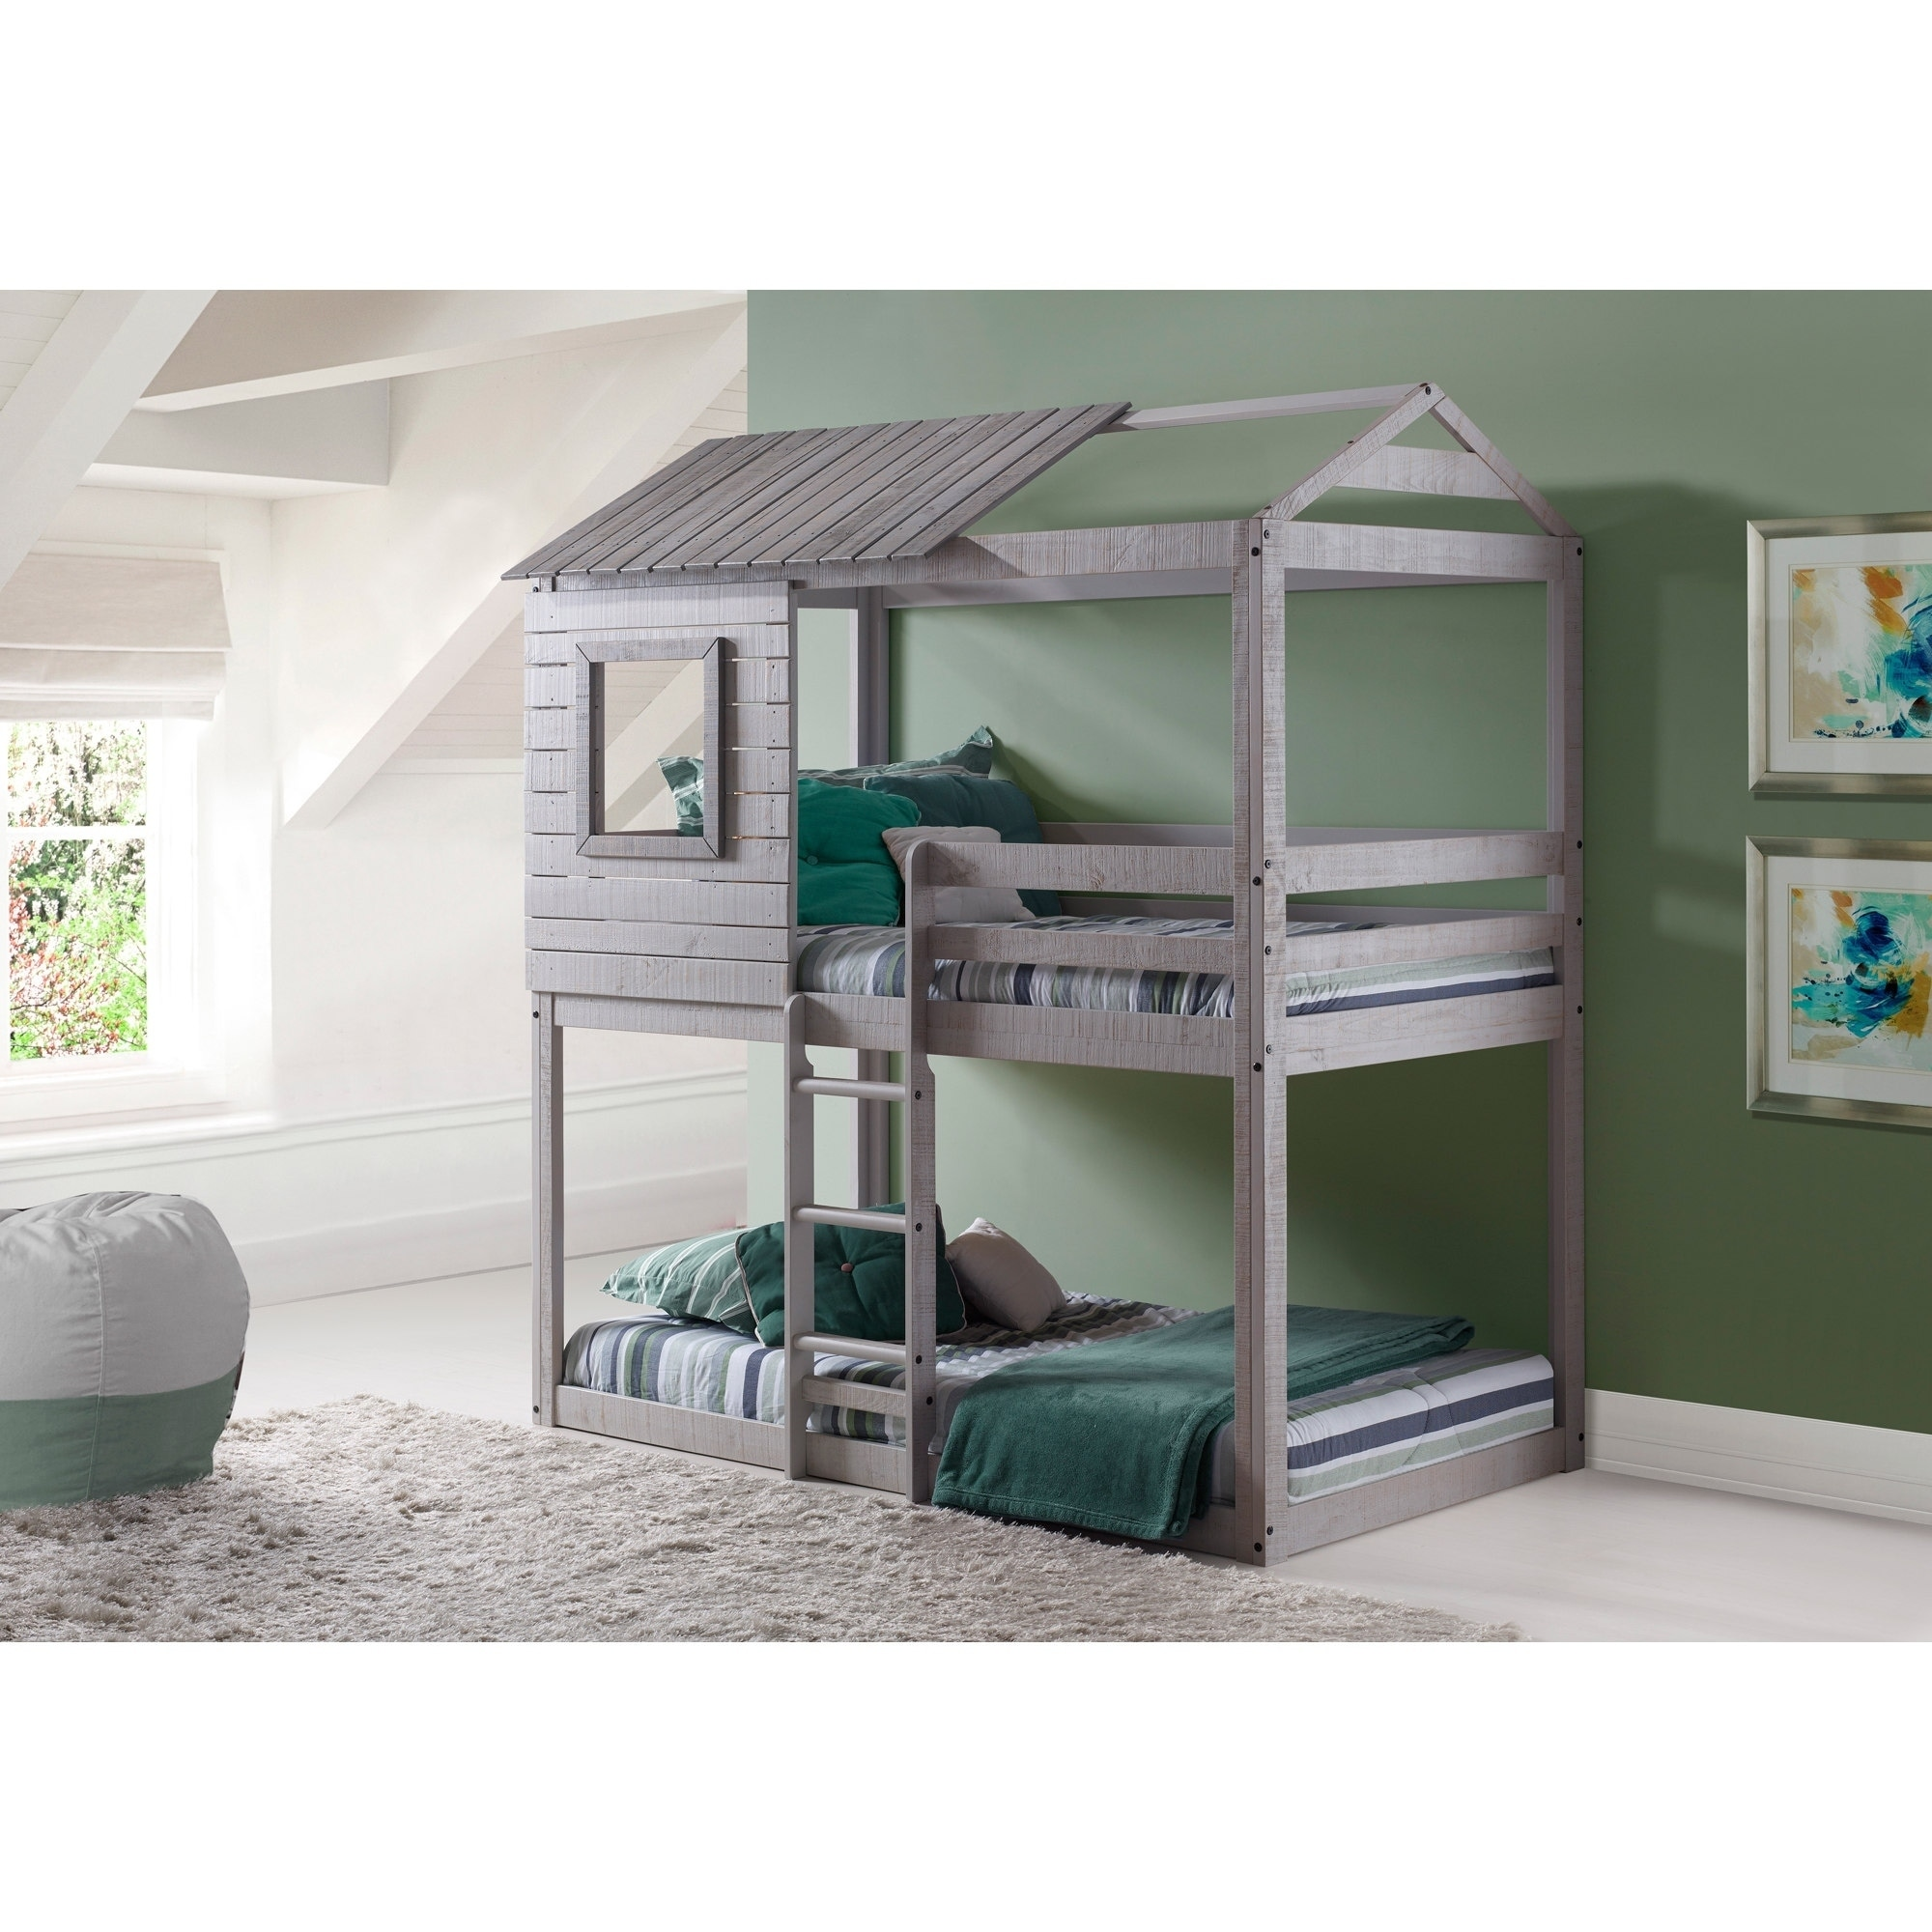 white bunk bed with stairs. Donco Kids Loft-Style Light Grey Twin Over Bunk Bed White Bunk Bed With Stairs